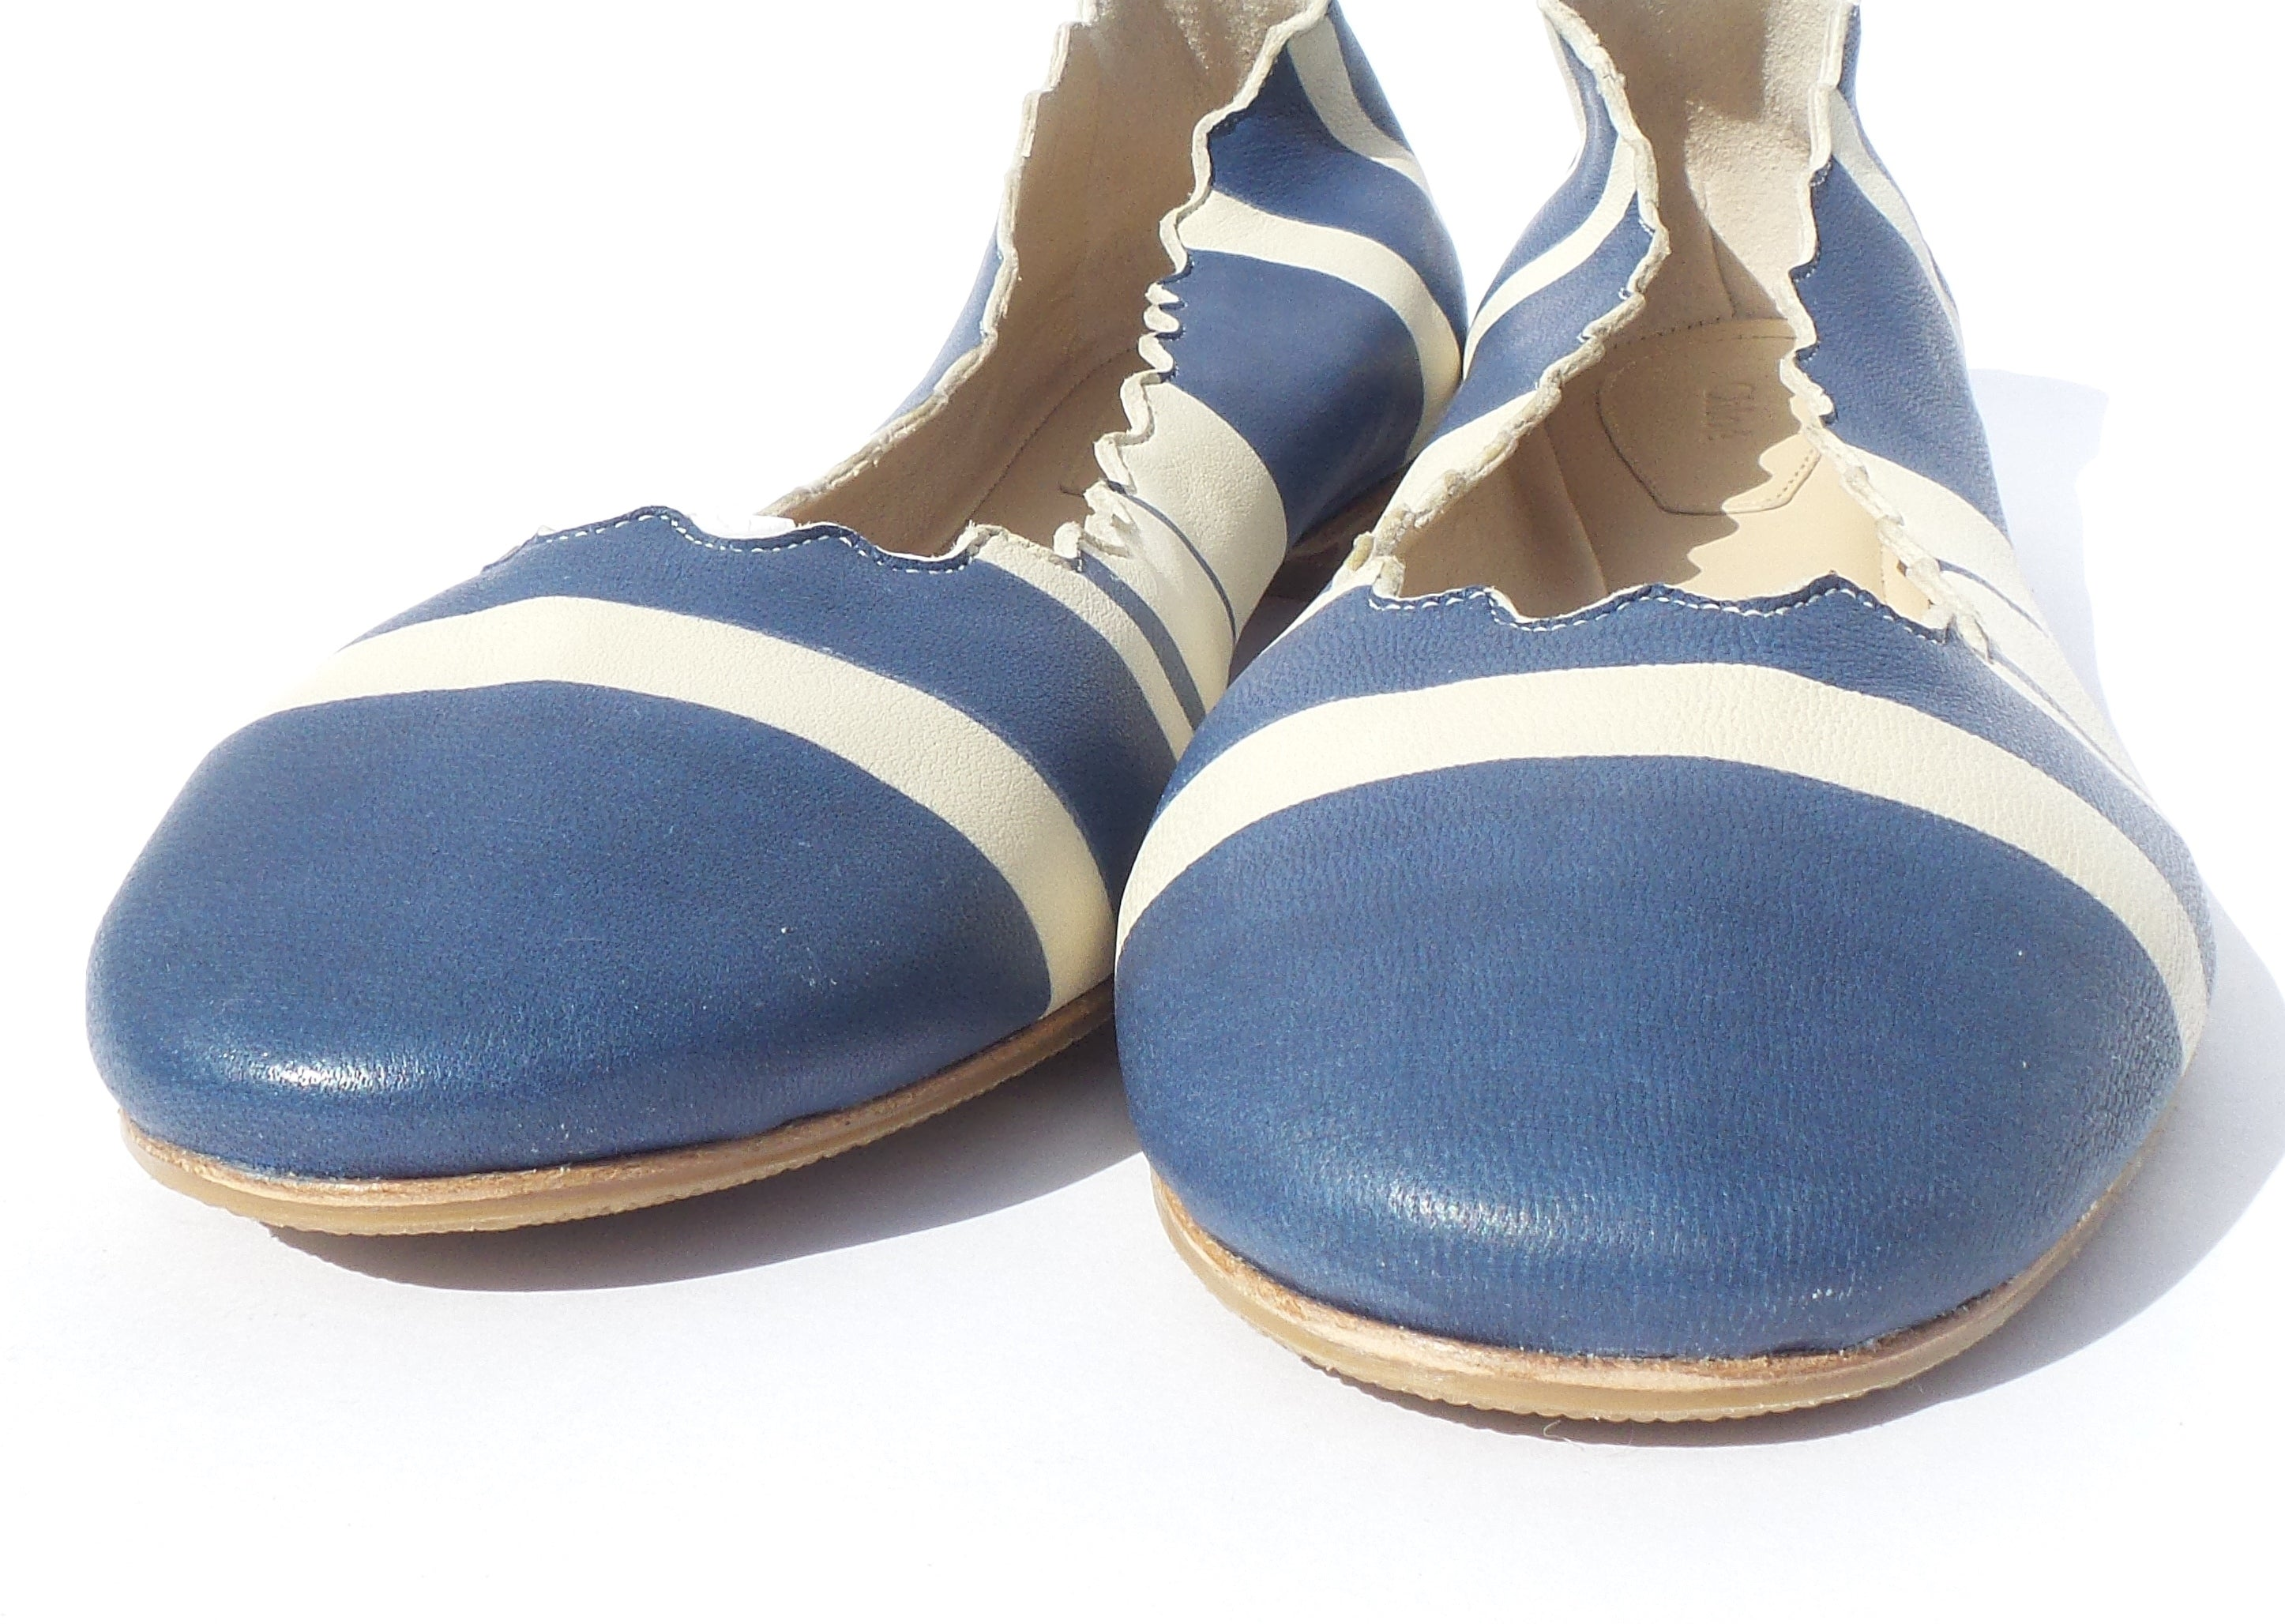 CHLOE Lauren Blue Creme Ivory Striped Smooth Leather Scalloped Ballet Flats 39.5